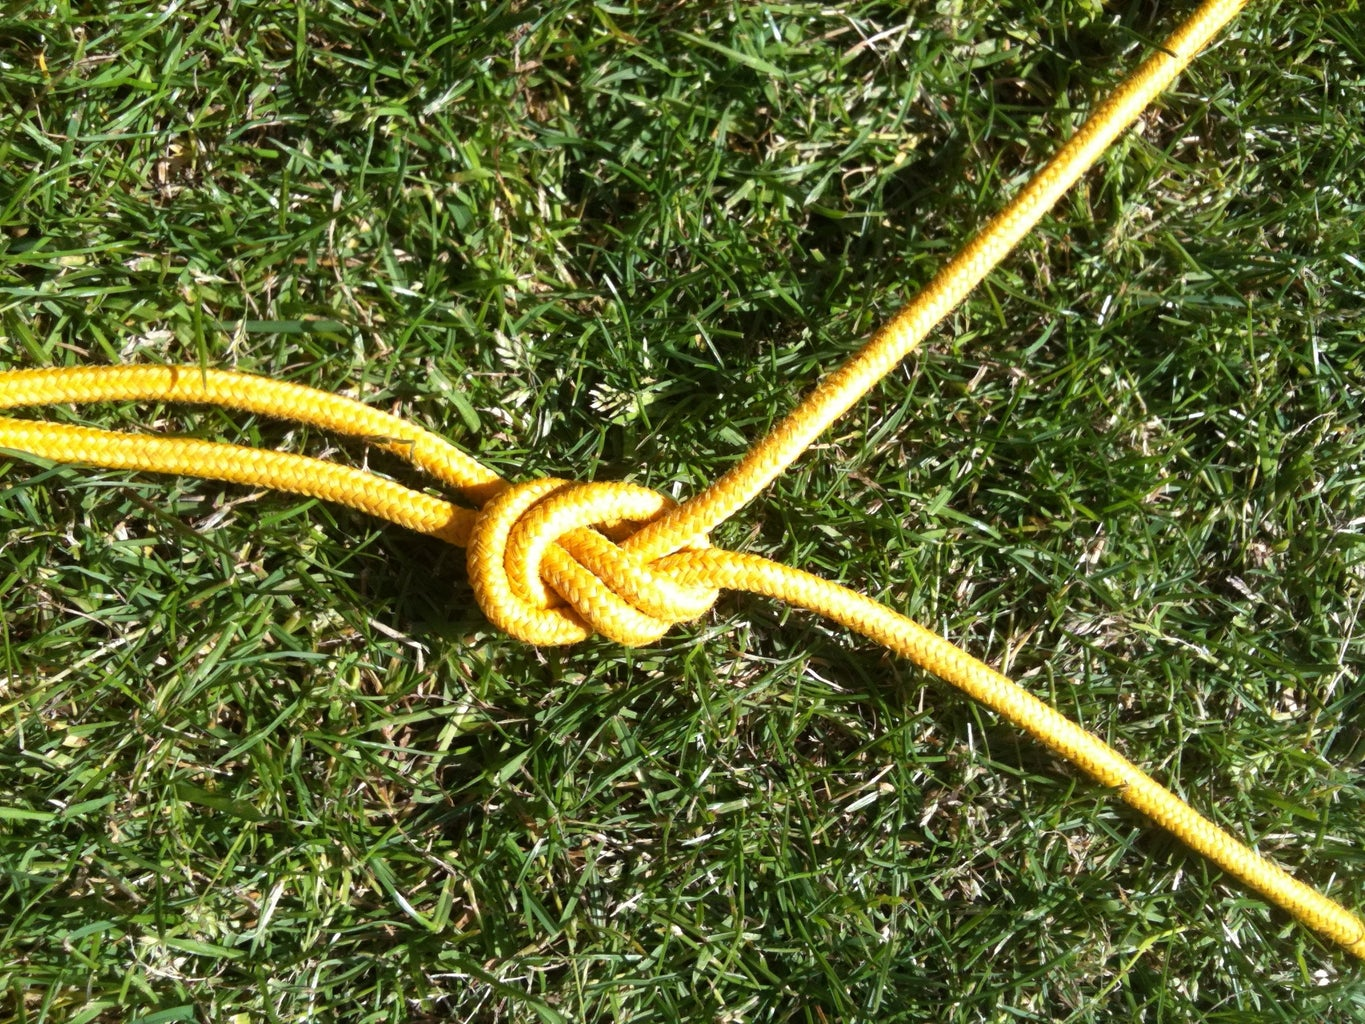 The Knots - Overhand Knot